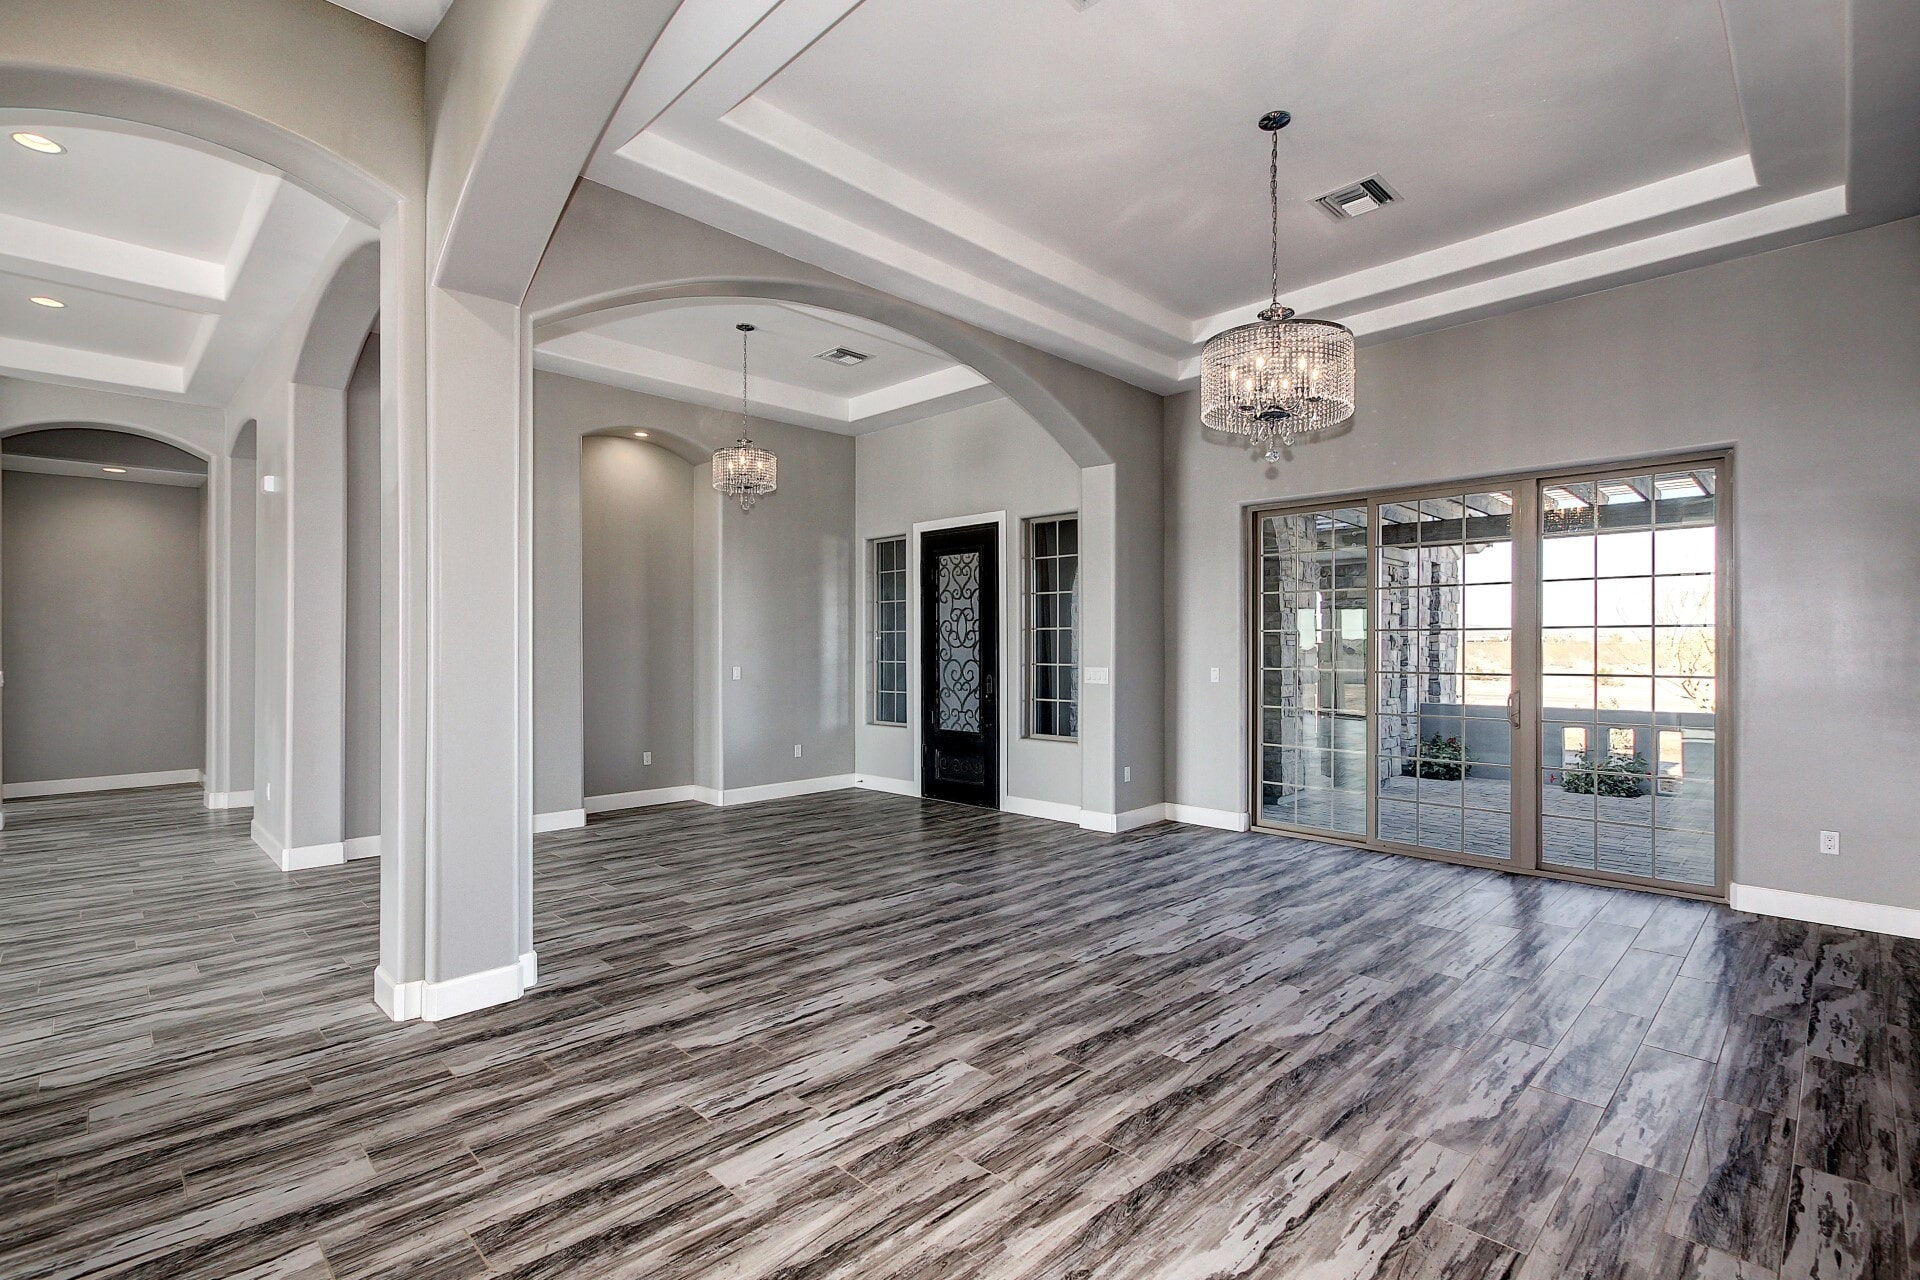 "Monterey Tile Vita Bella 8""x40"" Porcelain Plank Tile in Silver installed in Calle Lejos by Arrowhead Carpet & Tile"